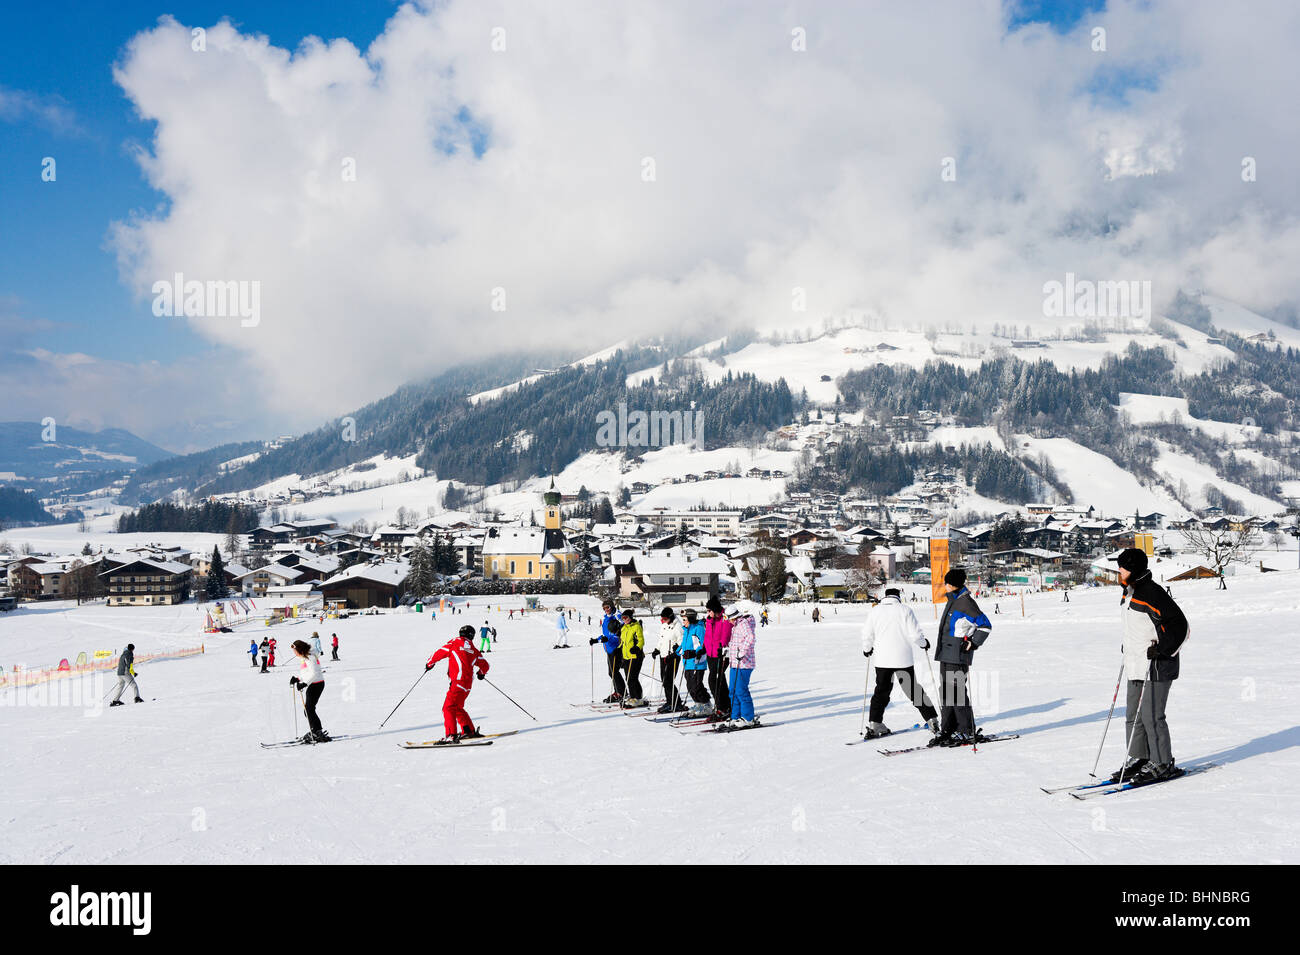 Ski school lesson on the nursery slopes just outside the resort centre, Westendorf, Tyrol, Austria - Stock Image